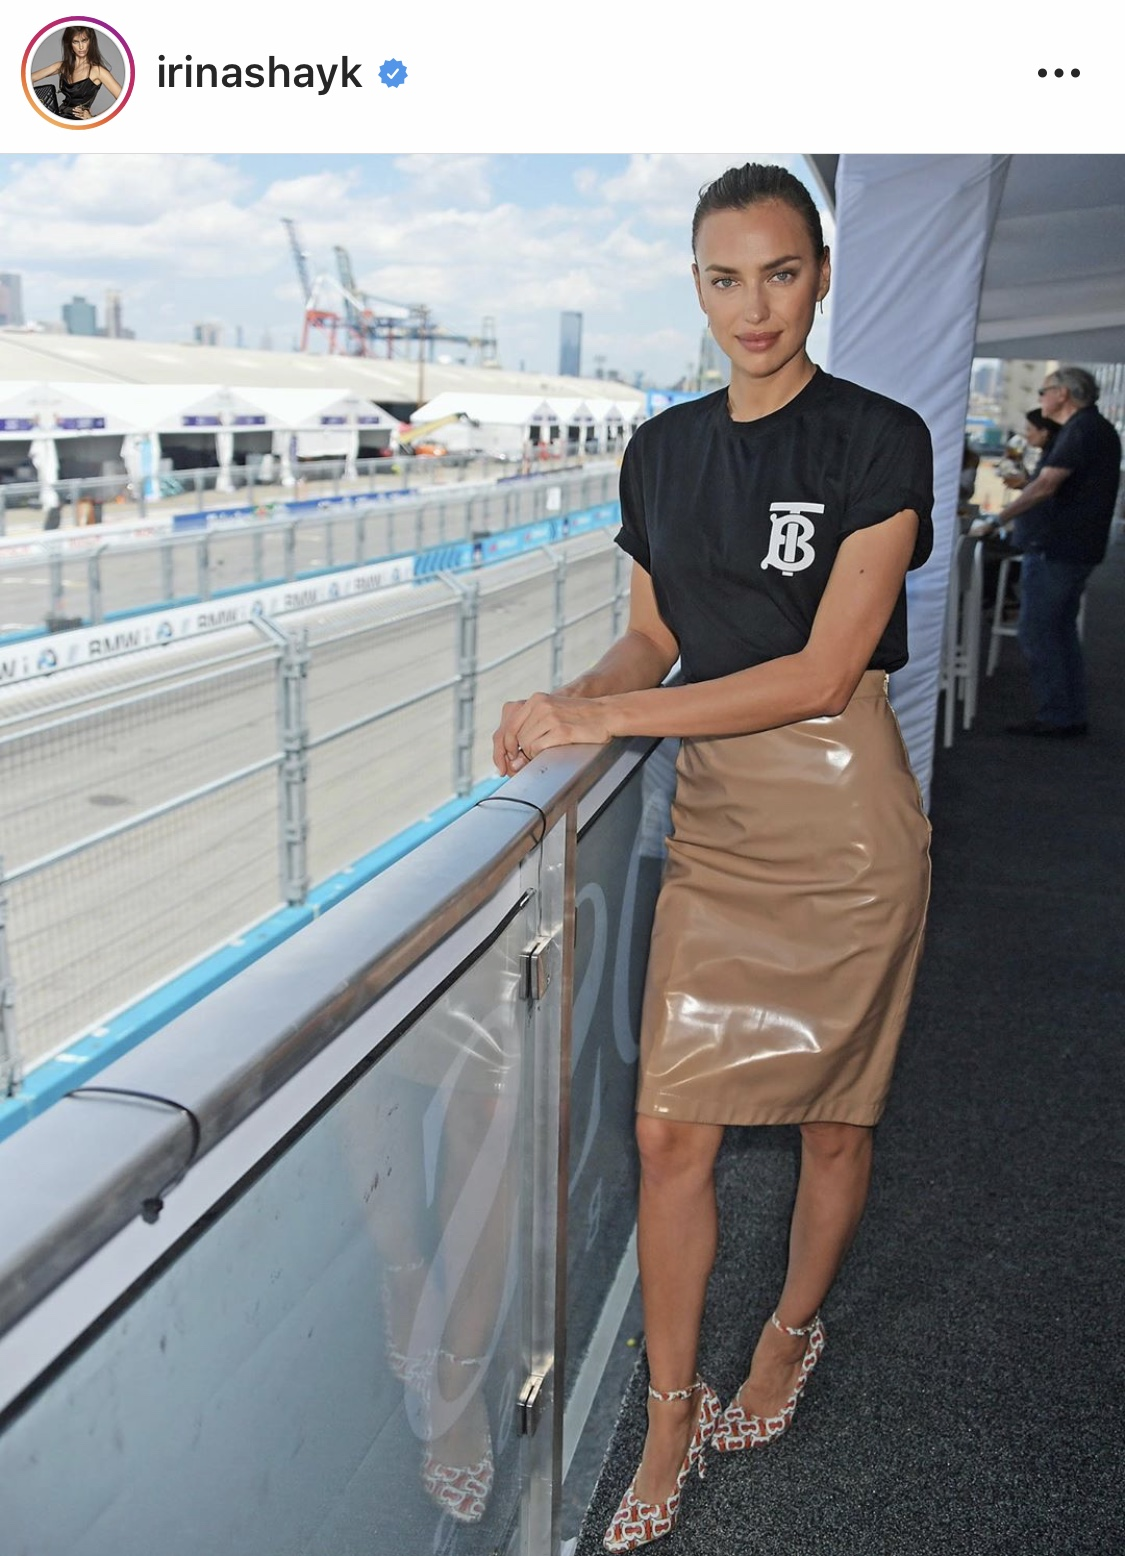 Irina-Shayk-wearing-Burberry-at-Nyc-E-prix.jpg